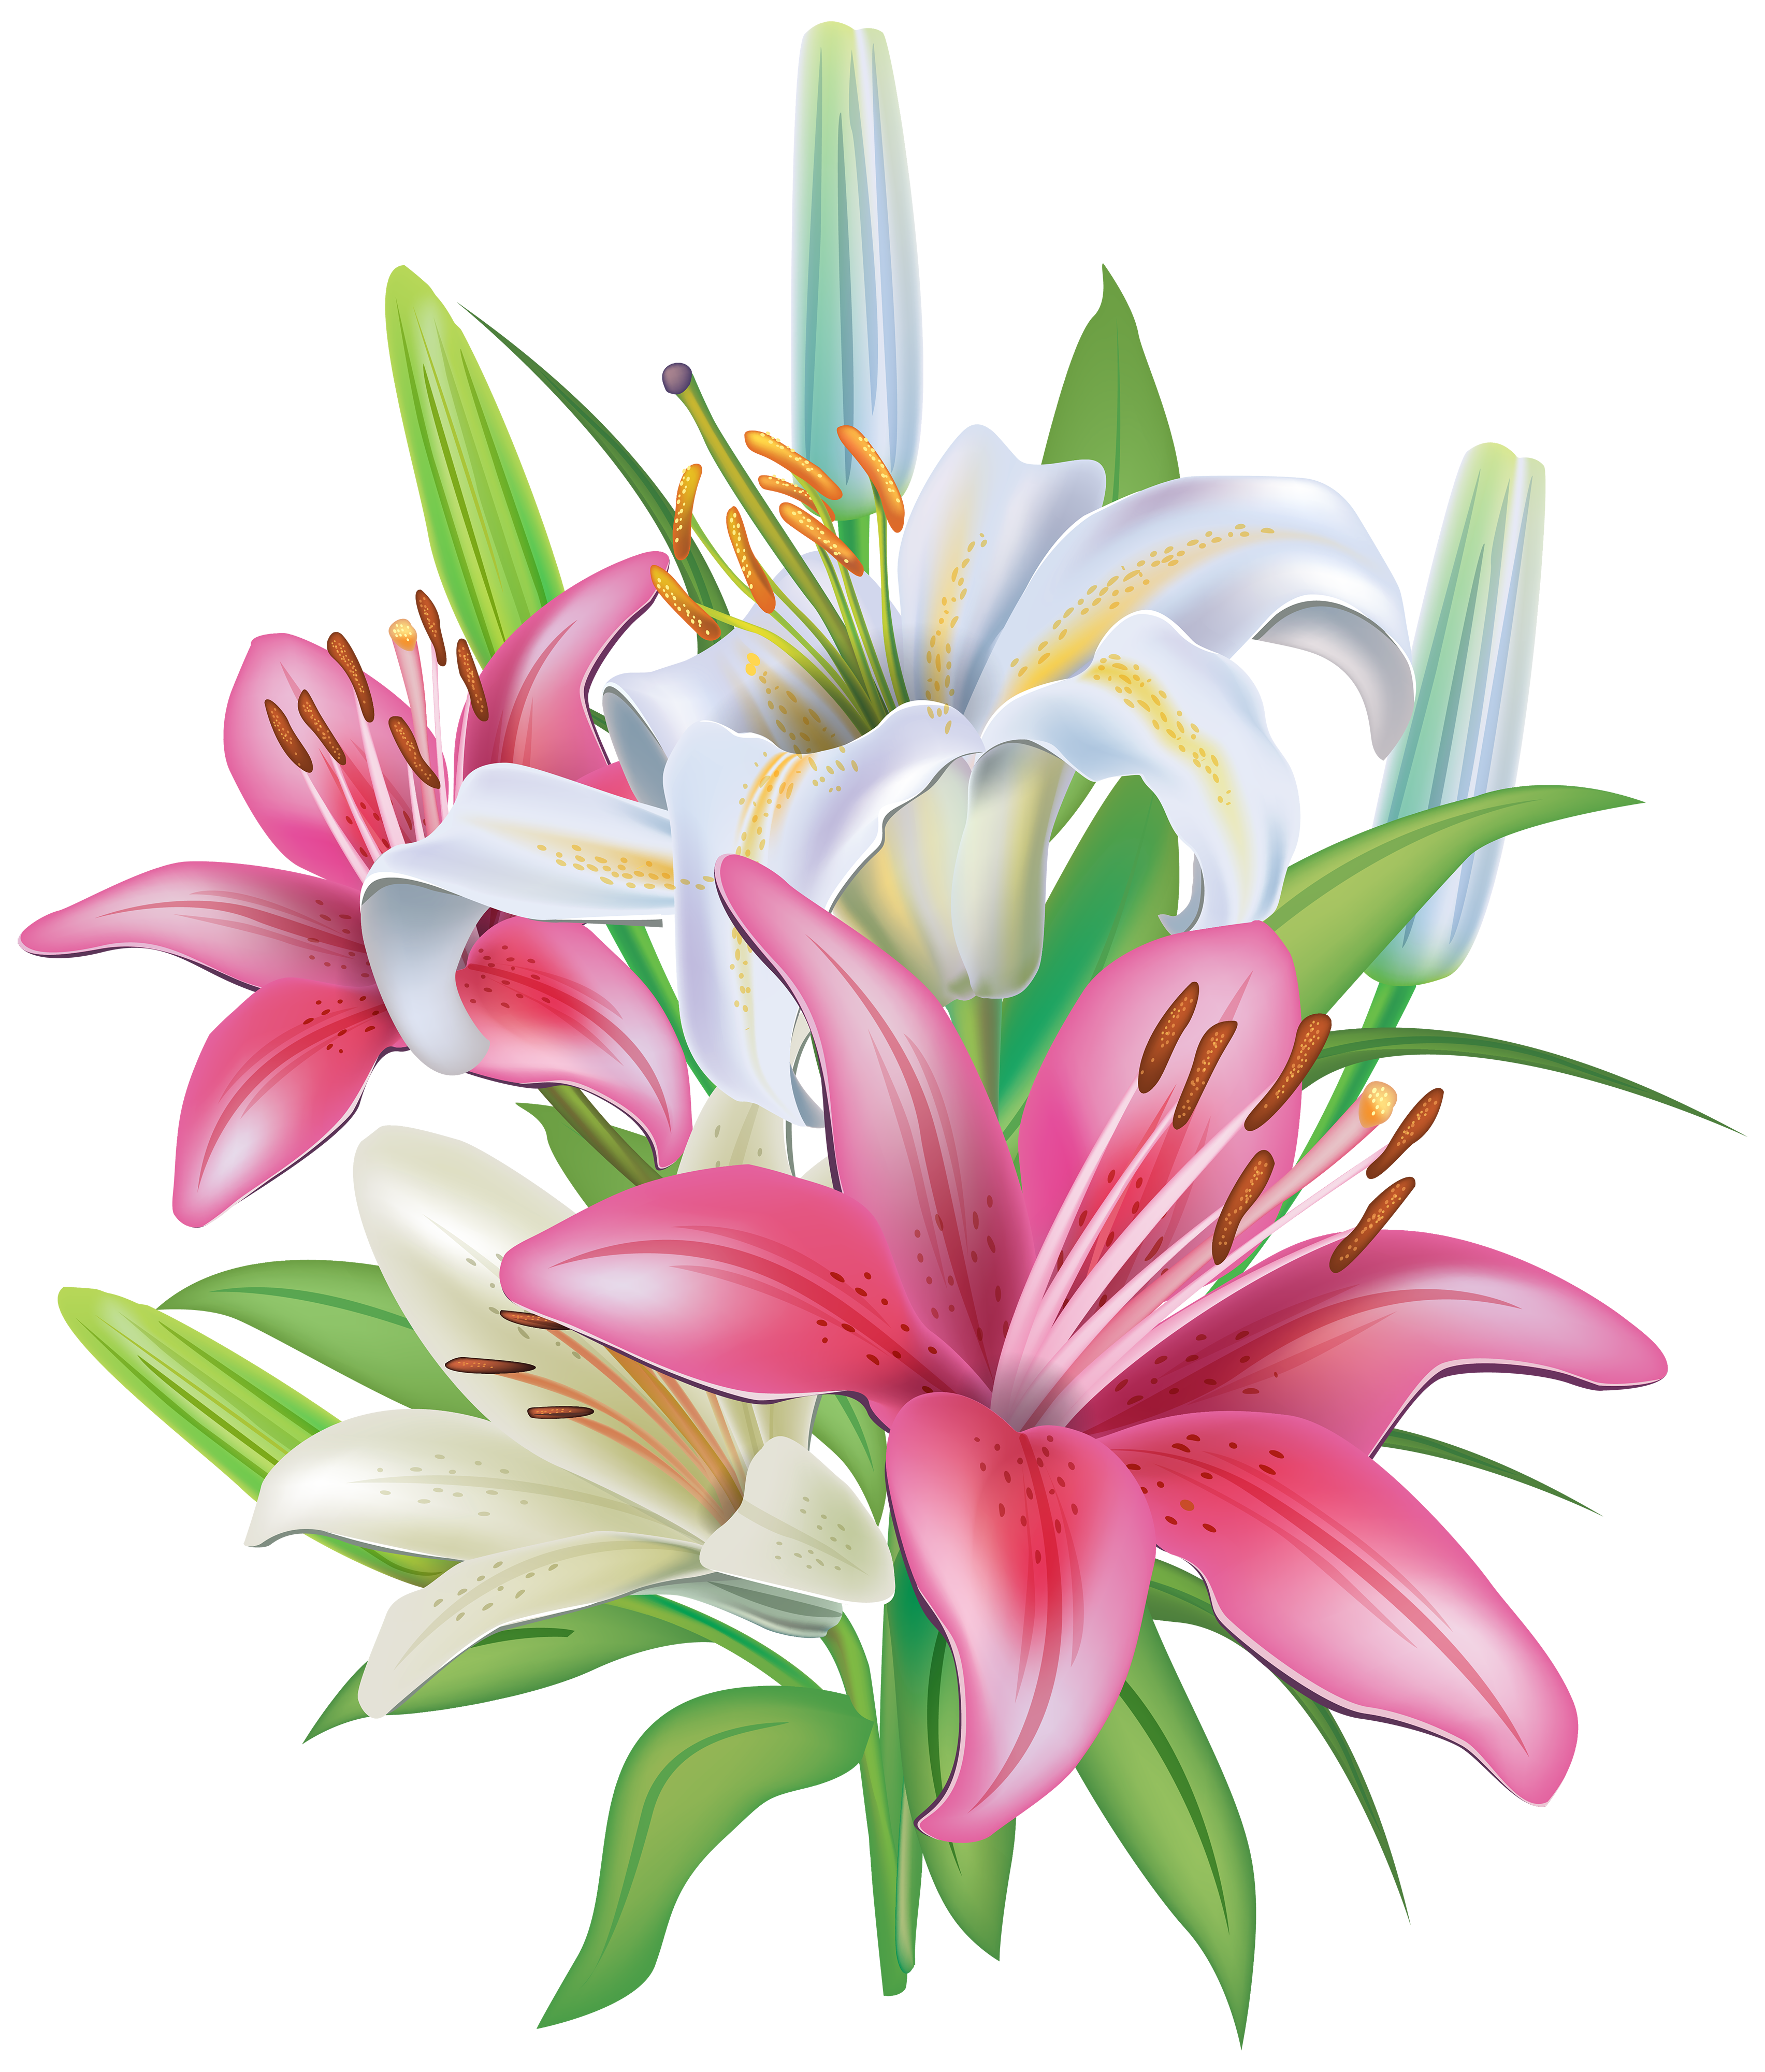 Roses and lilys clipart clip art free Roses clipart lily for free download and use images in ... clip art free